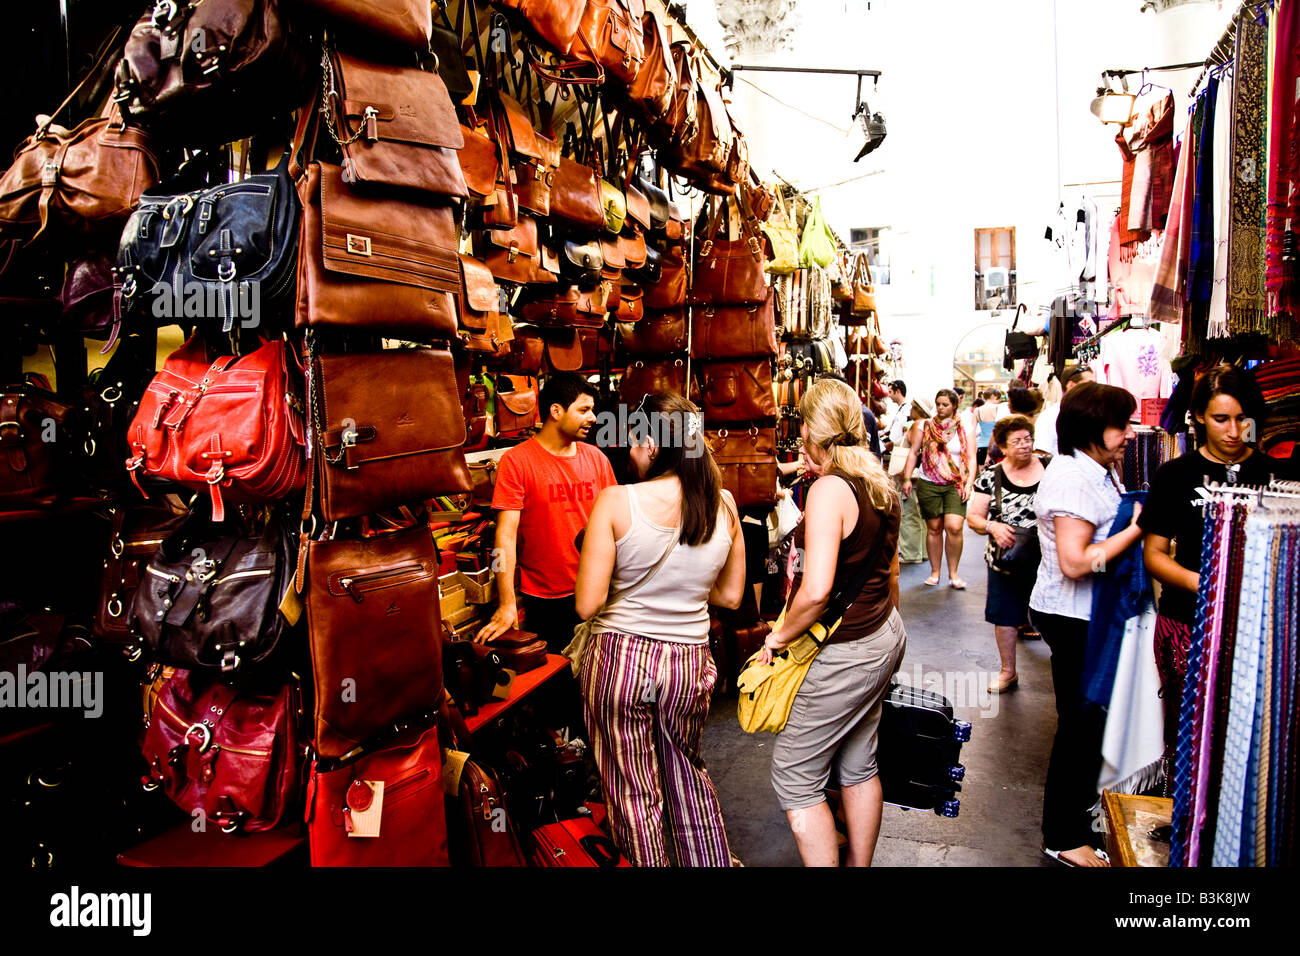 Shoppers looking at leather goods in a market in florence - Stock Image